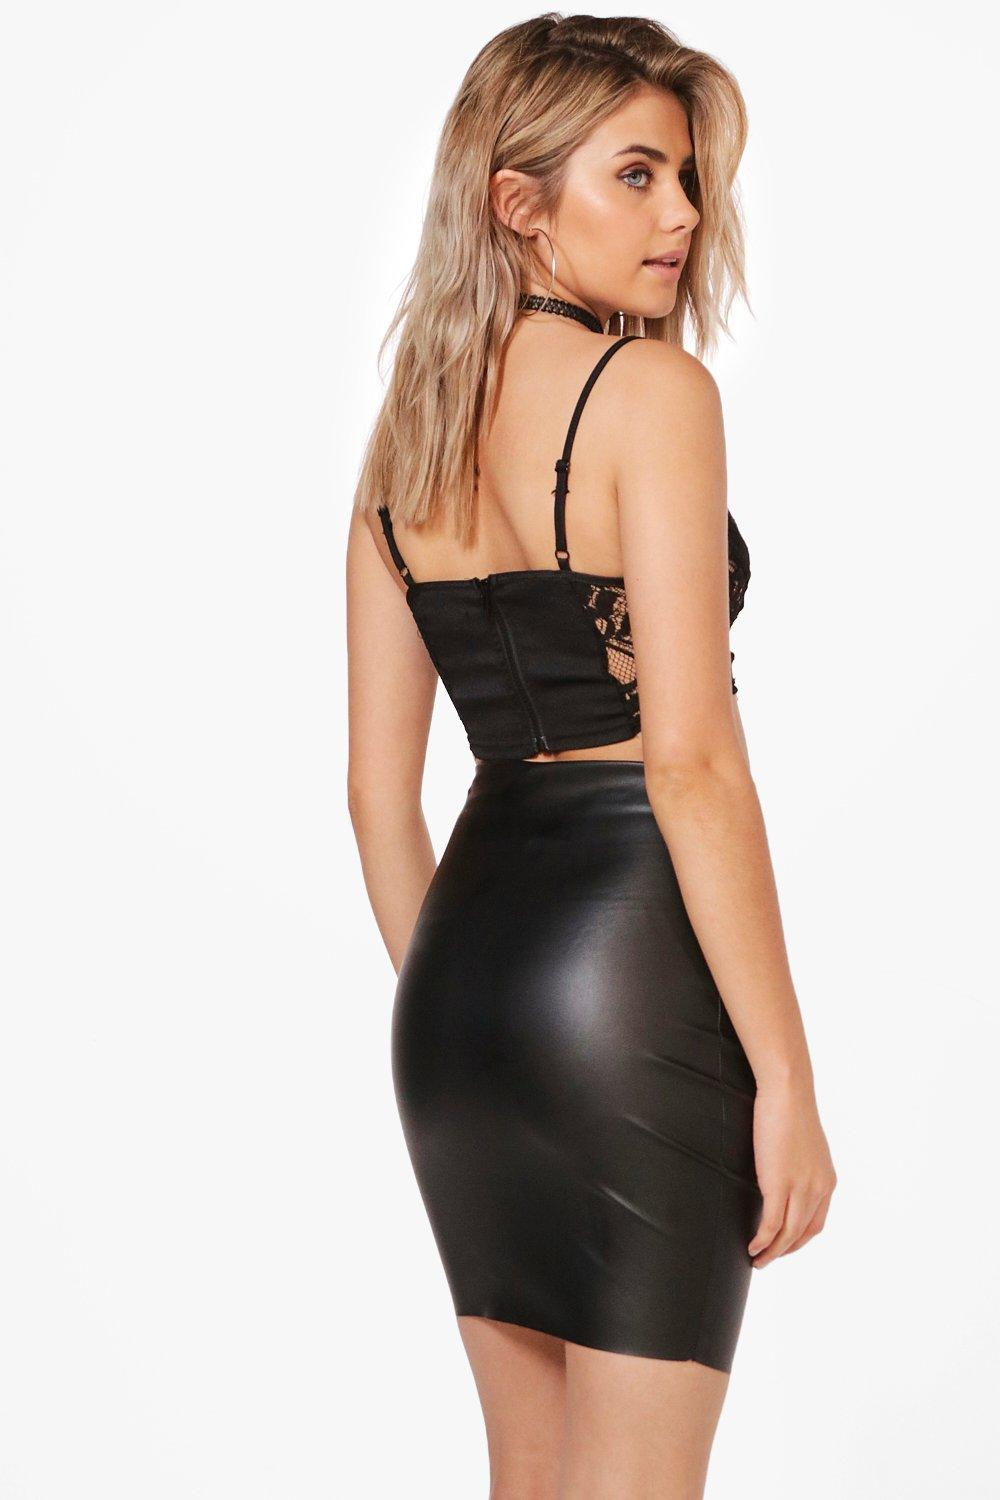 Aurera High Waist Leather Look Mini Skirt at boohoo.com